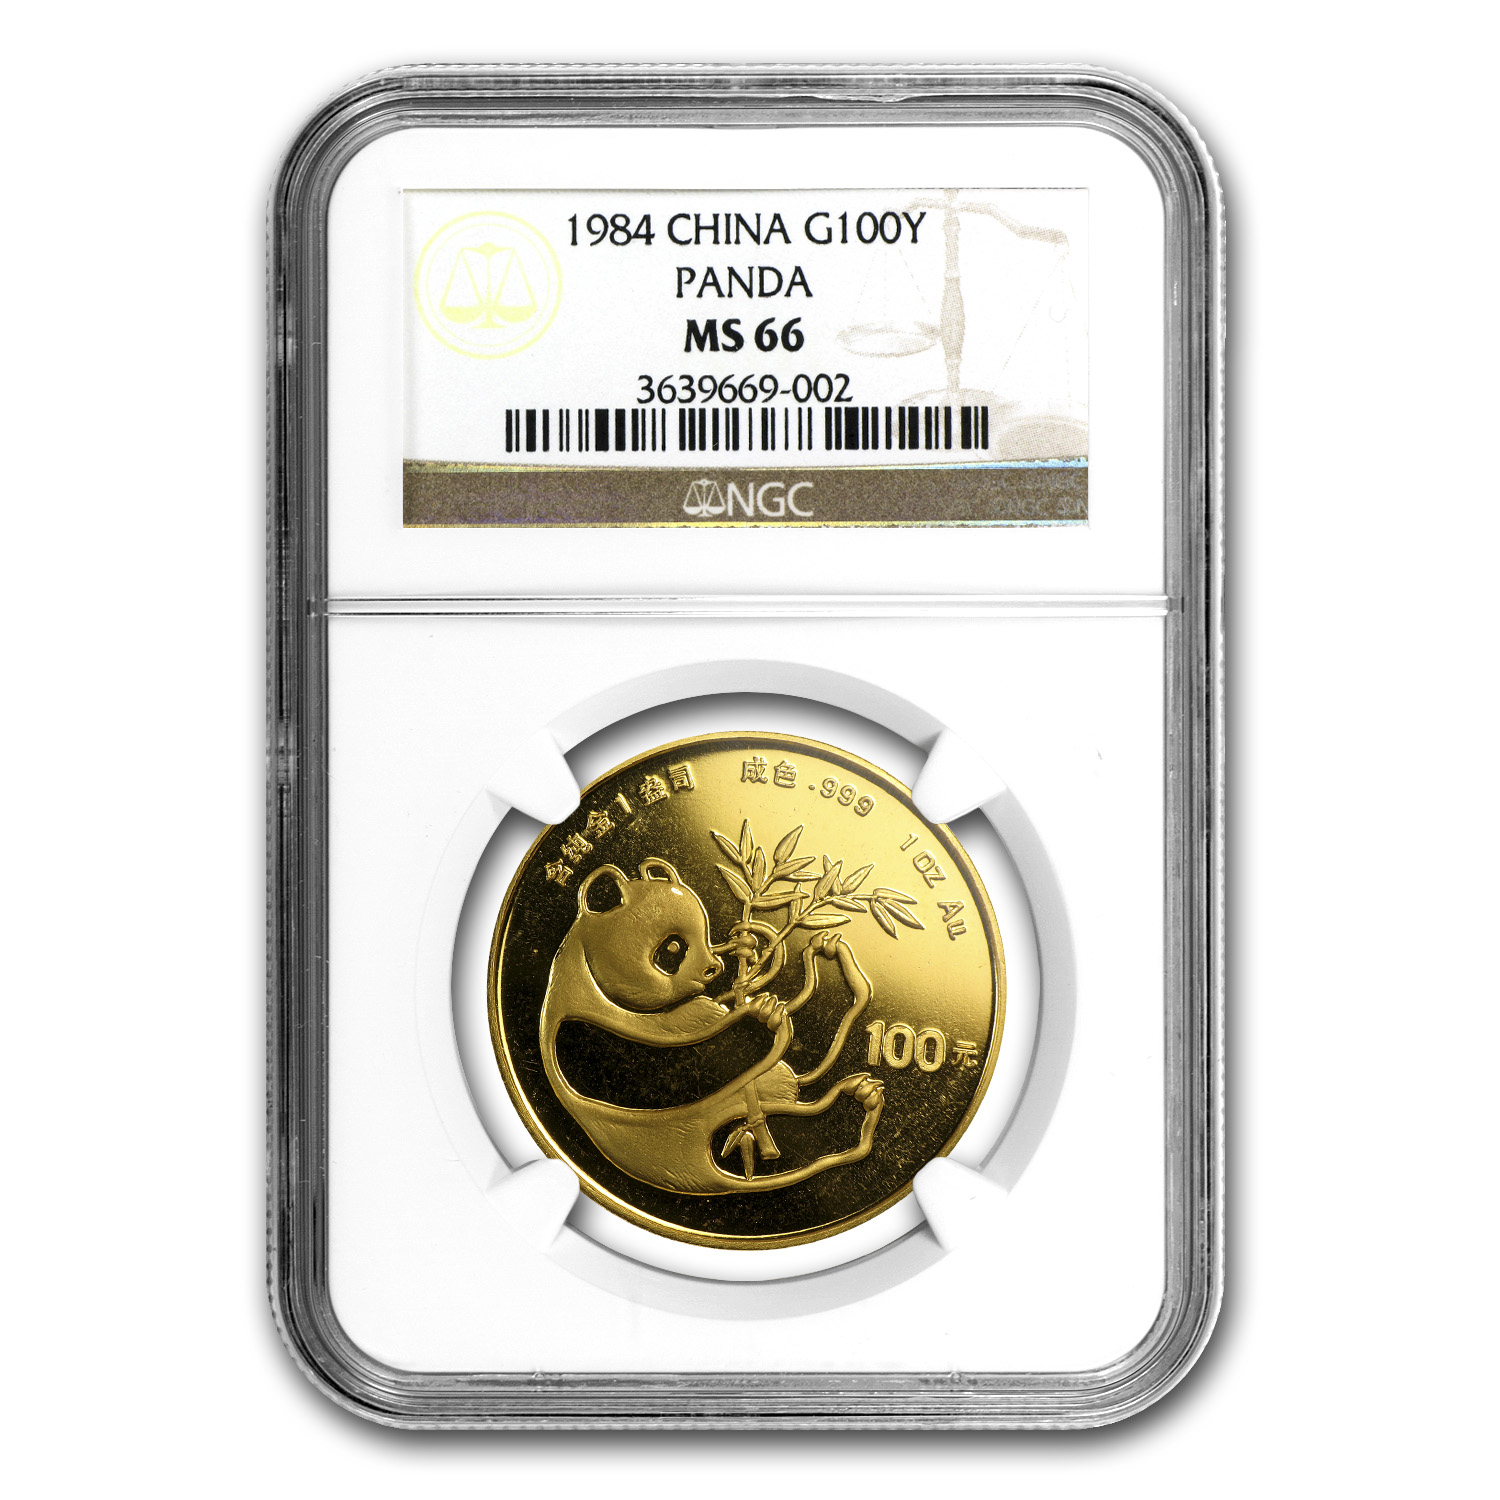 1984 China 1 oz Gold Panda MS-66 NGC